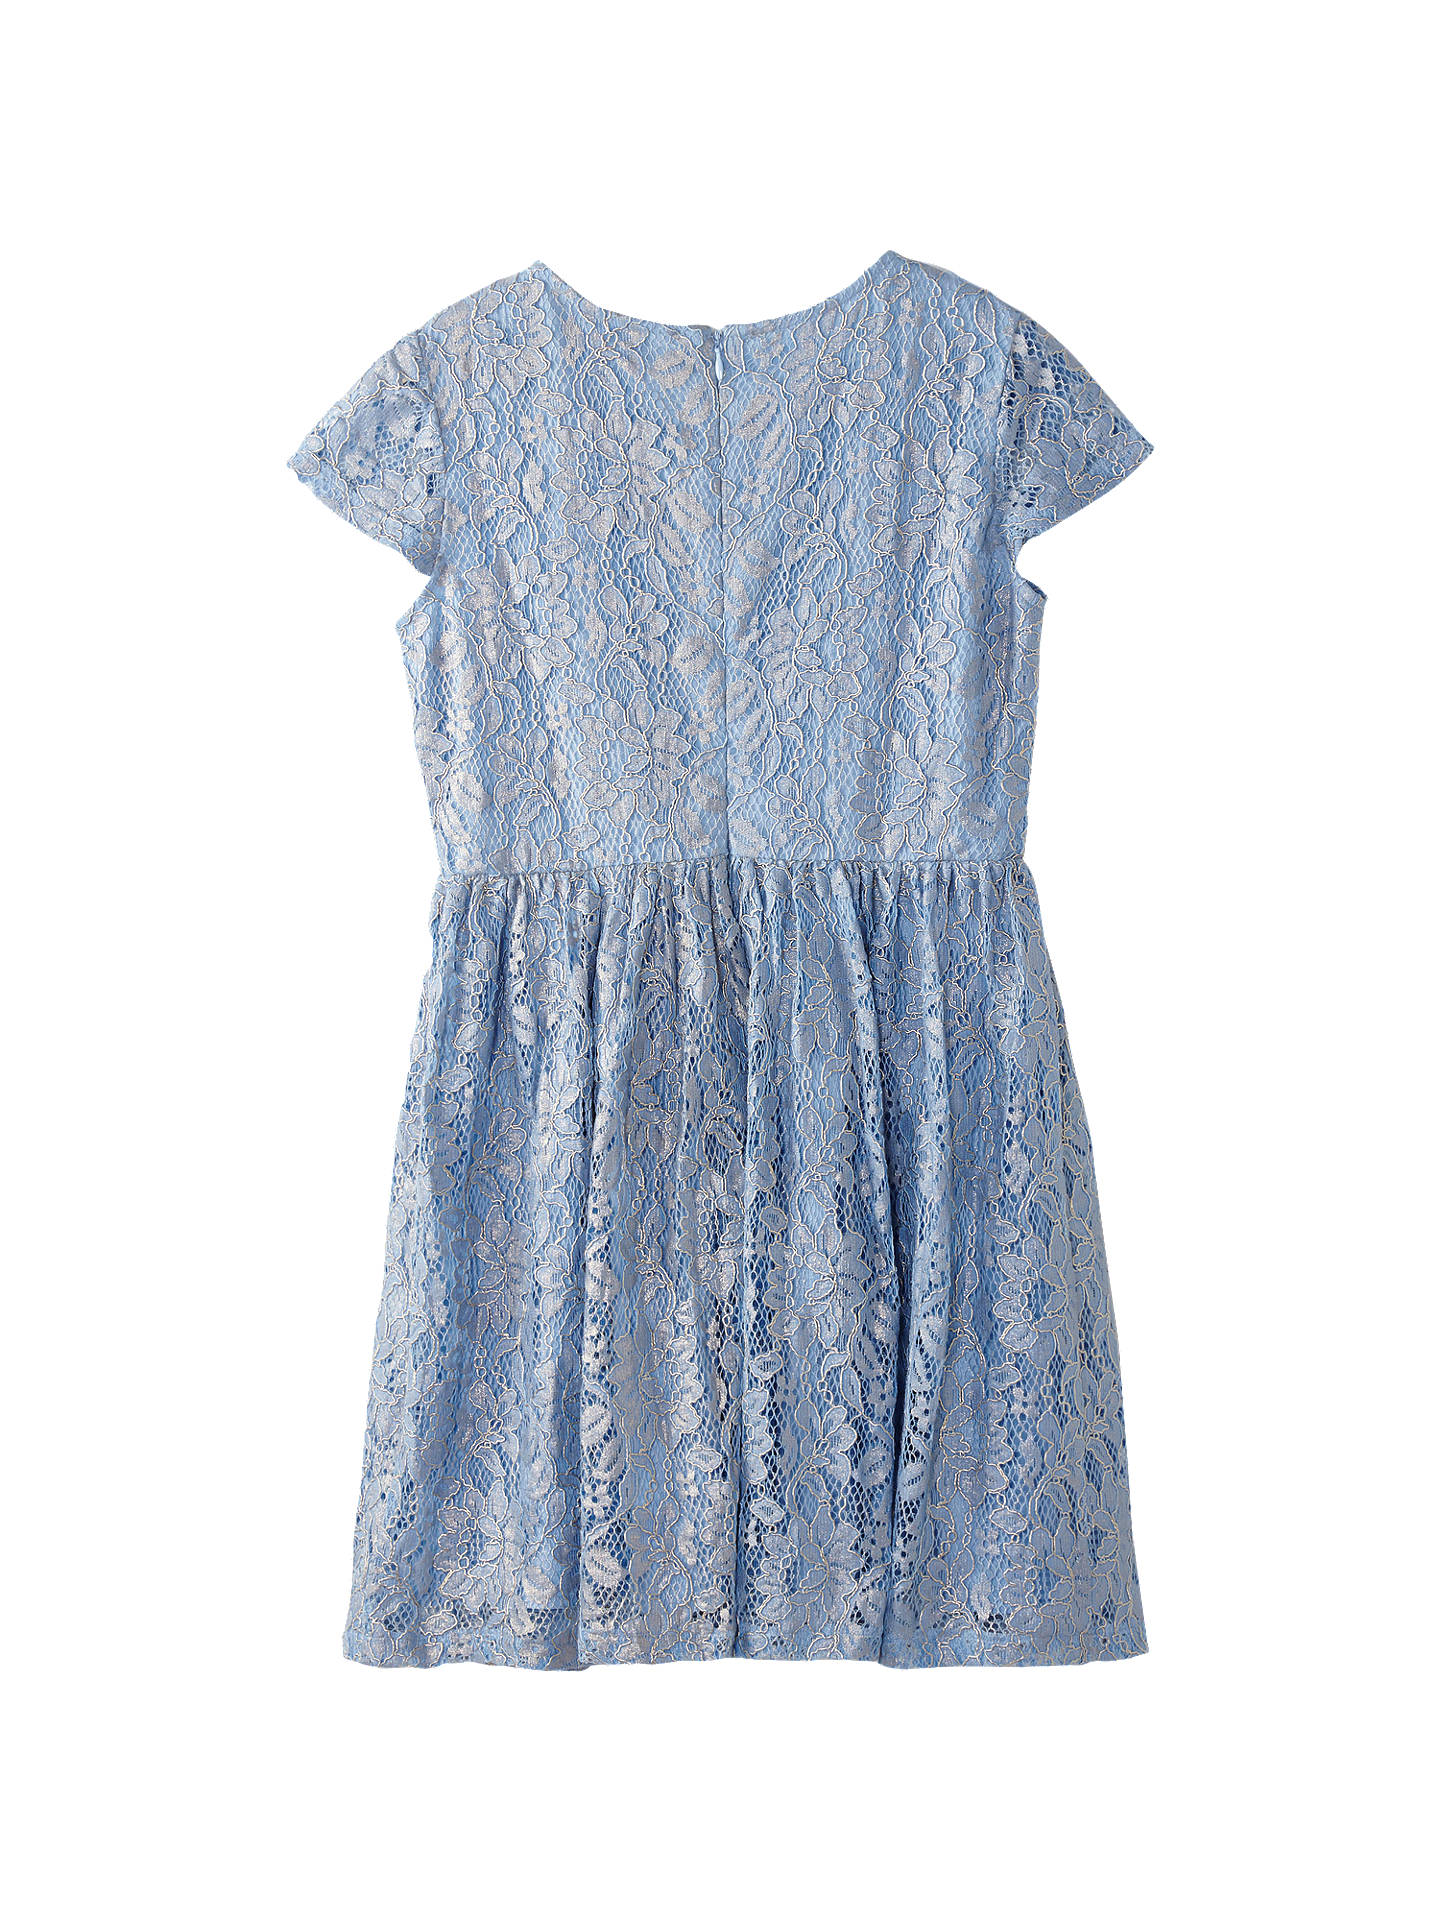 BuyYumi Girl Foiled Lace Dress, Blue, 5-6 years Online at johnlewis.com